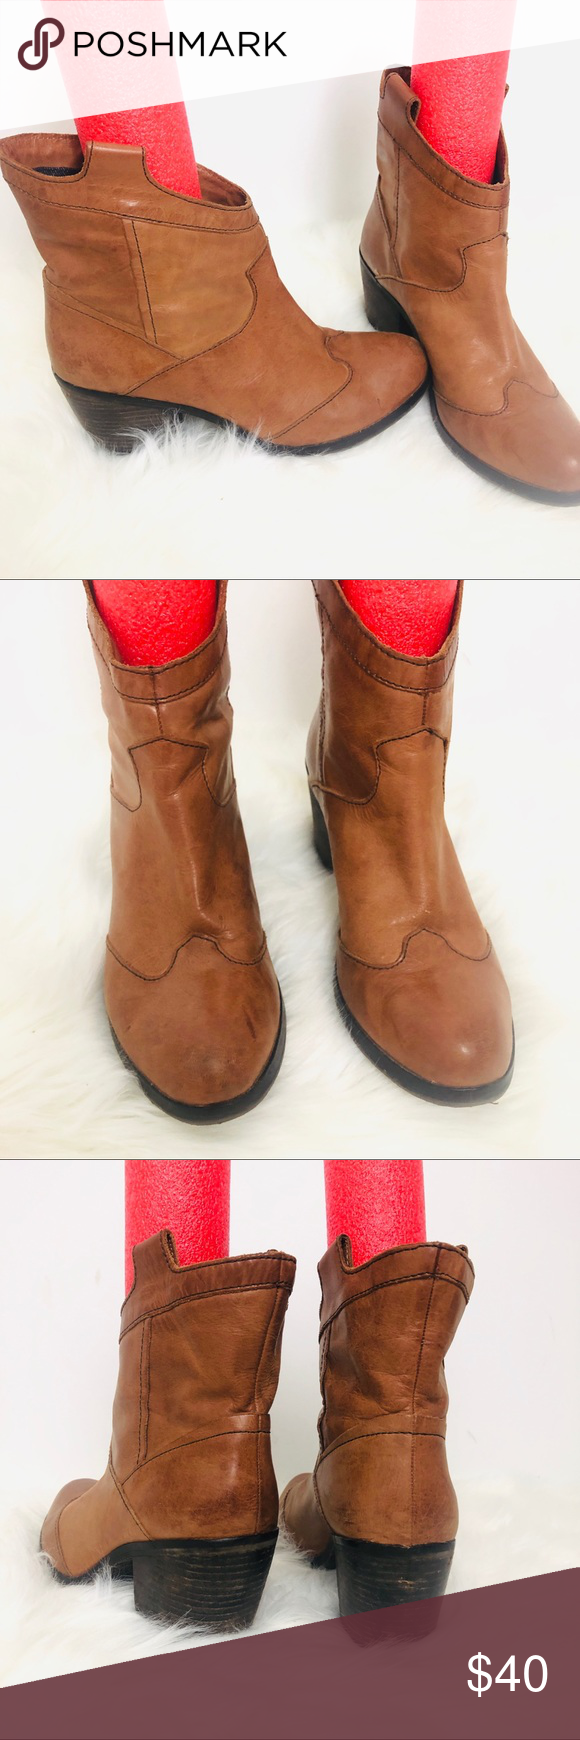 Calvin Klein brown boots Irene Size 9 Calvin Klein brown leather ankle boots size 9 name on label is Irene in great condition soft leather upper similar to a cowboy but great for skinny jeans see photos for more details(S145) Calvin Klein Shoes Ankle Boots & Booties #skinnyjeansandankleboots